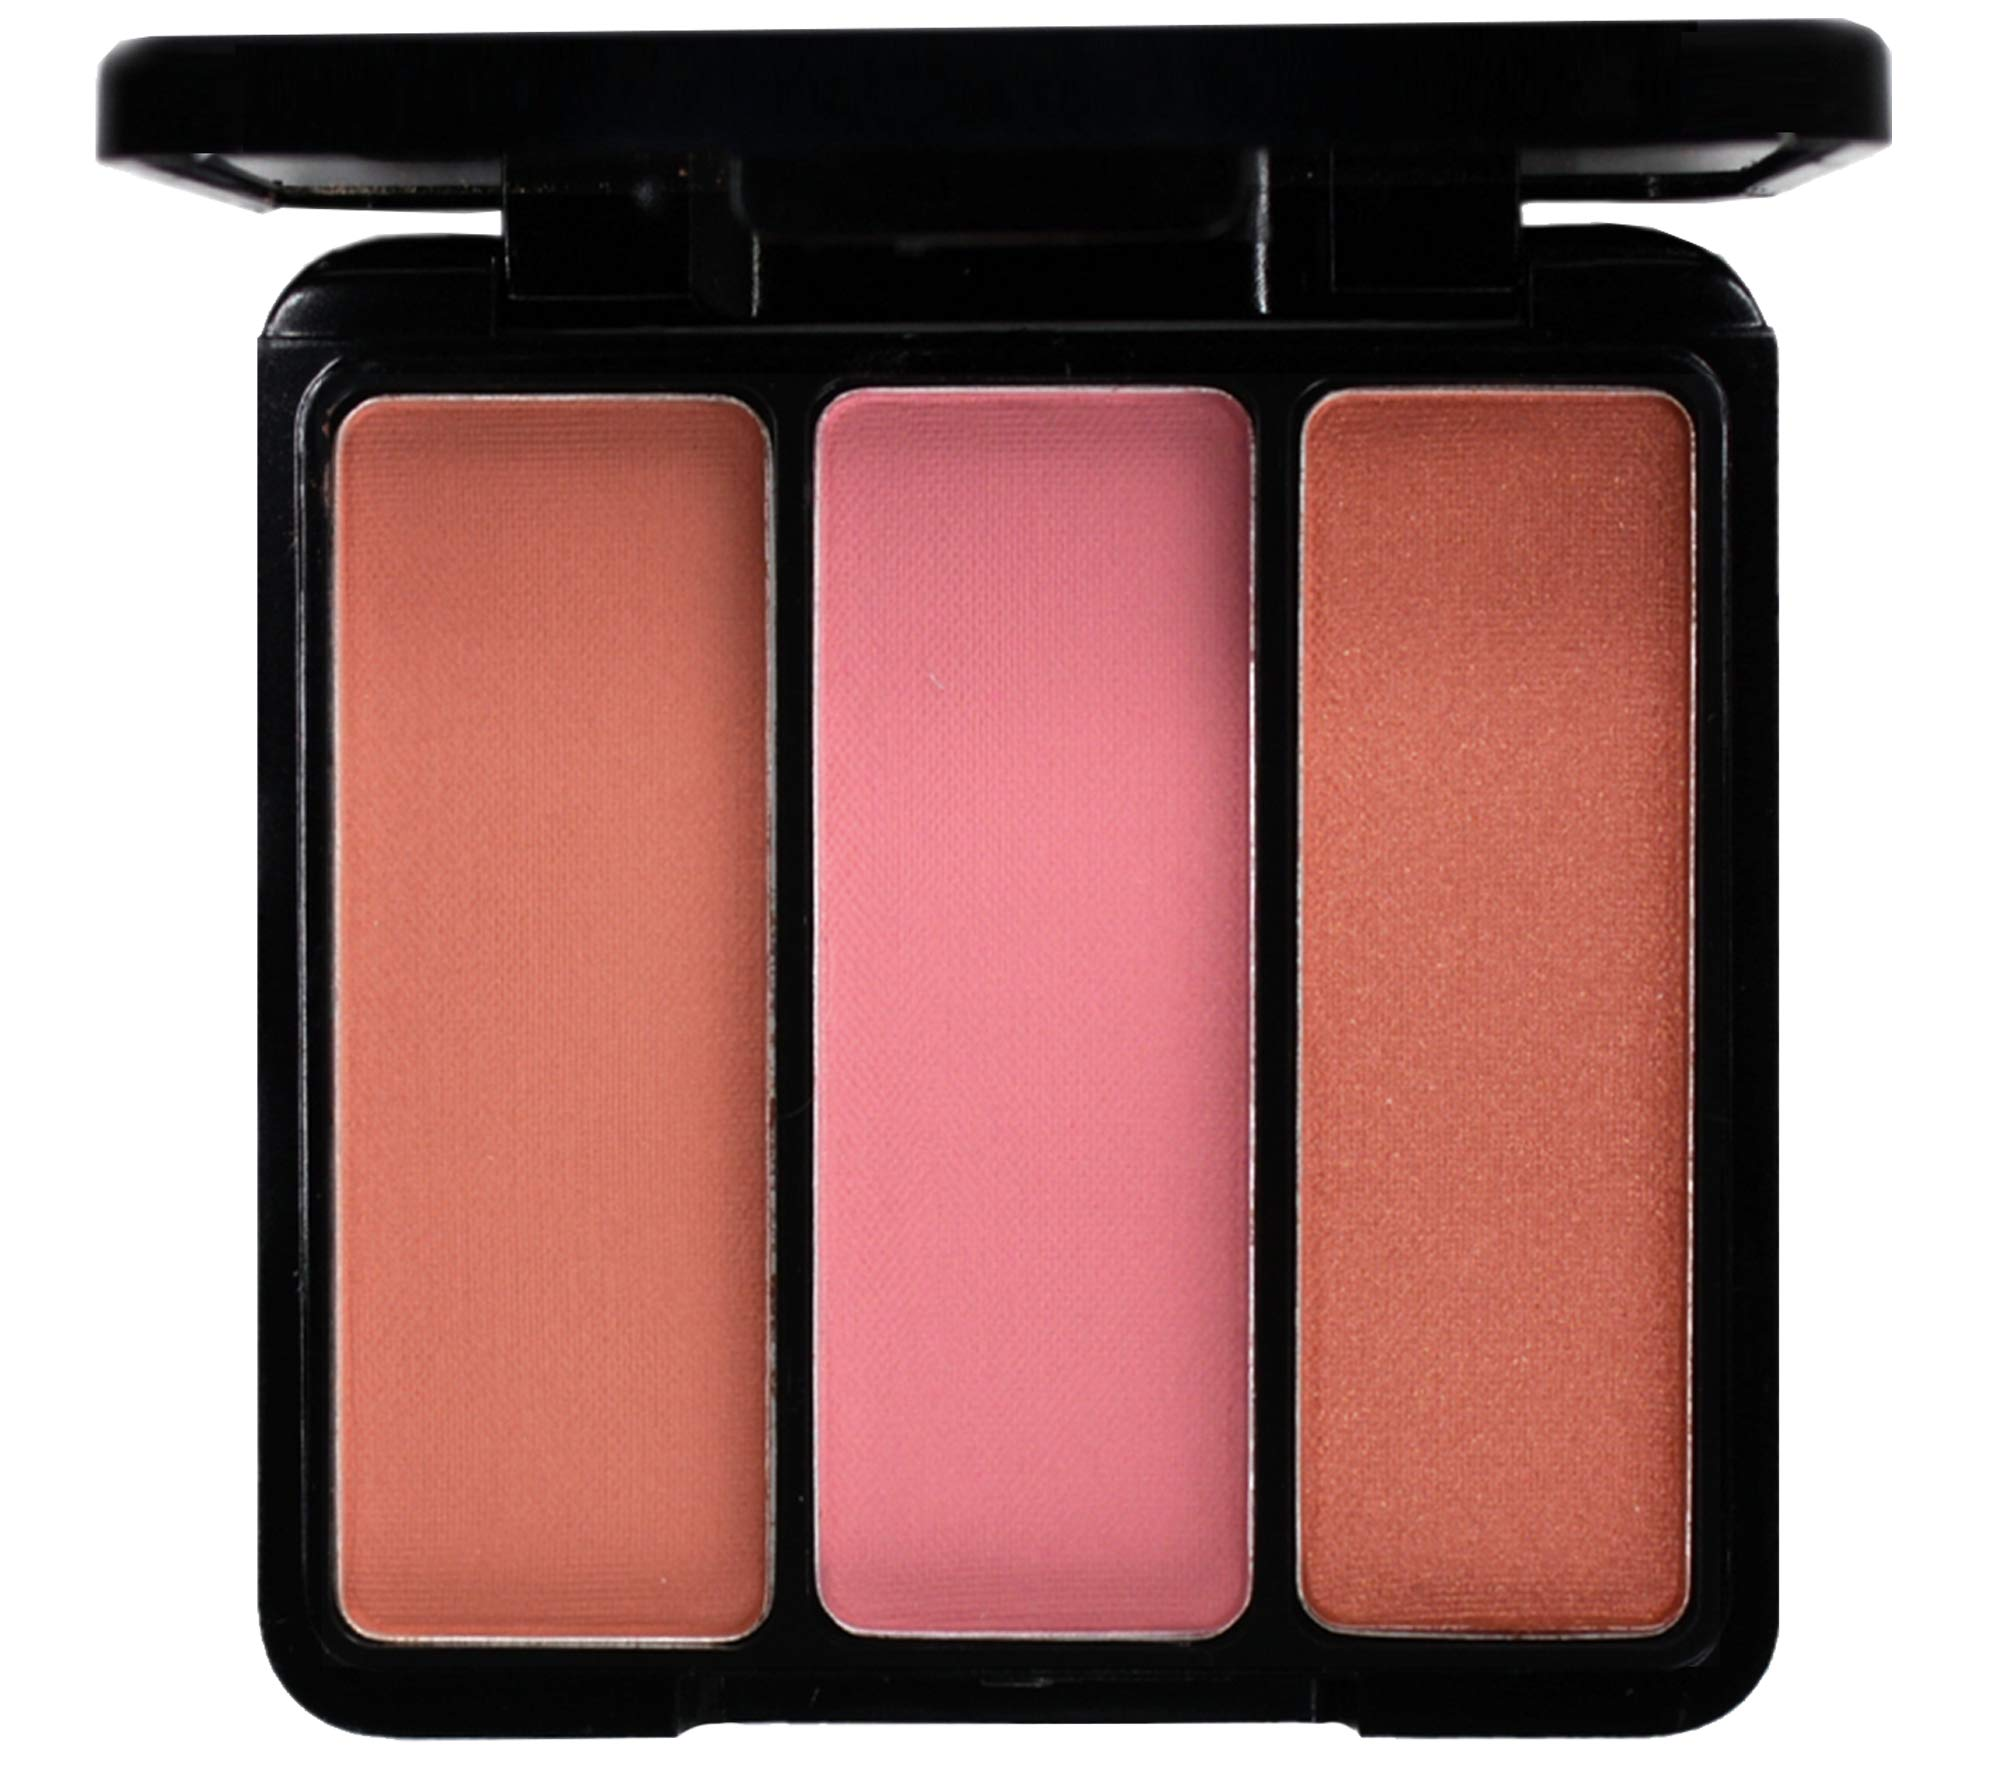 EVE PEARL Blush Trio Blush Palette Everyday Natural Looking Long Lasting Makeup Vitamin E Skincare- Sultry Cheeks